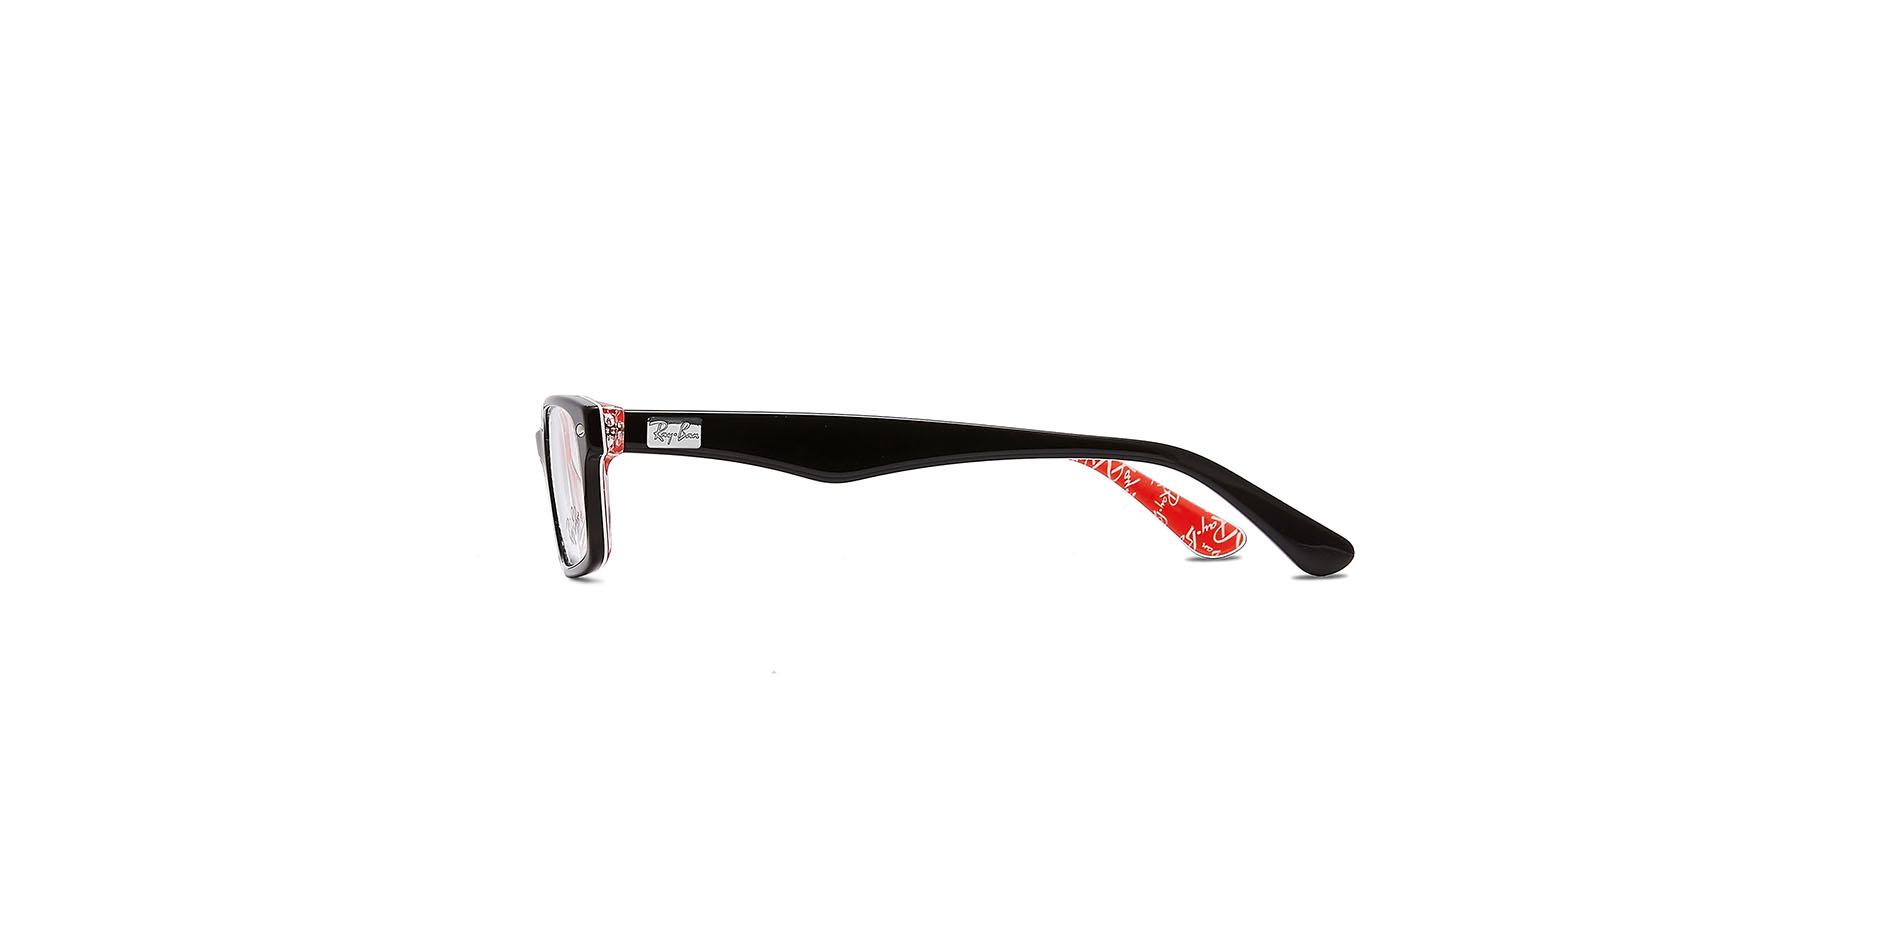 Occhiali da vista donna in materiale sintetico, Ray-Ban, RB 5206